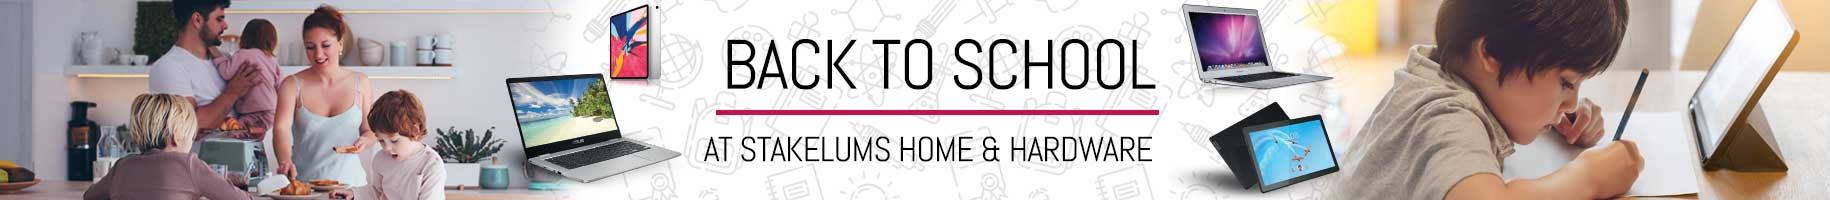 Back to School laptops tablets lunch boxes and more at Stakelums Home & Hardwre